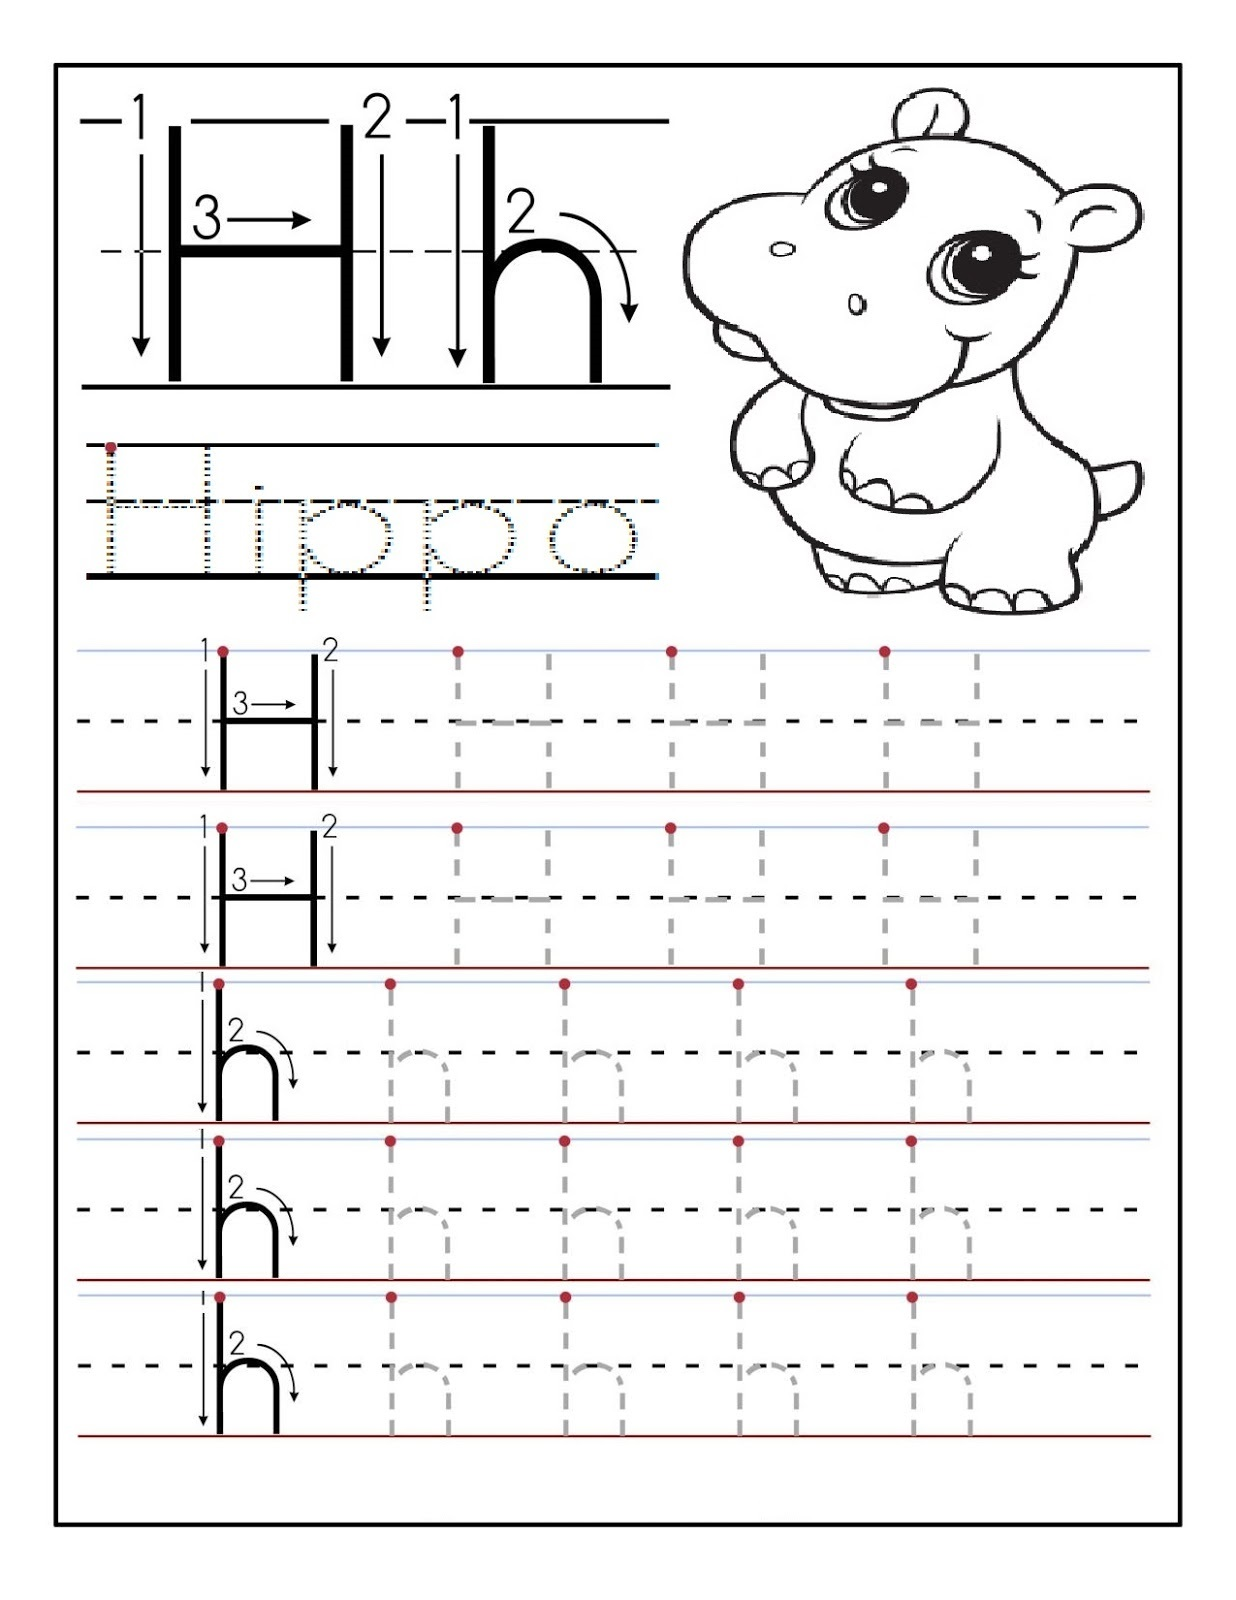 printable letter h tracing worksheets for preschoolers preschool crafts. Black Bedroom Furniture Sets. Home Design Ideas